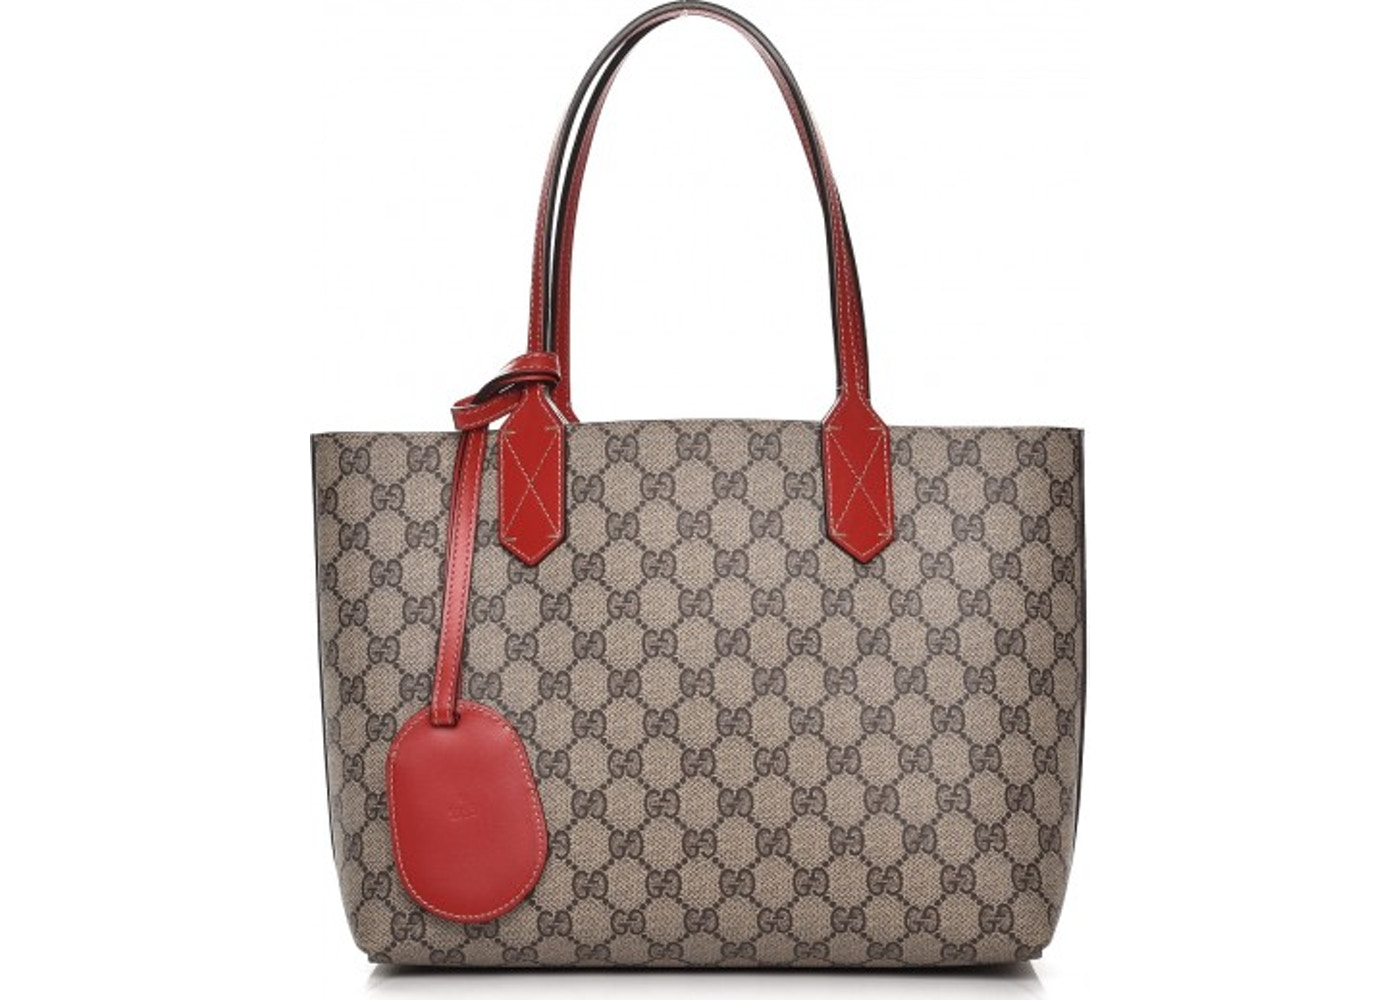 c79aae07f270 Gucci Reversible Tote GG Supreme Small Beige/Red